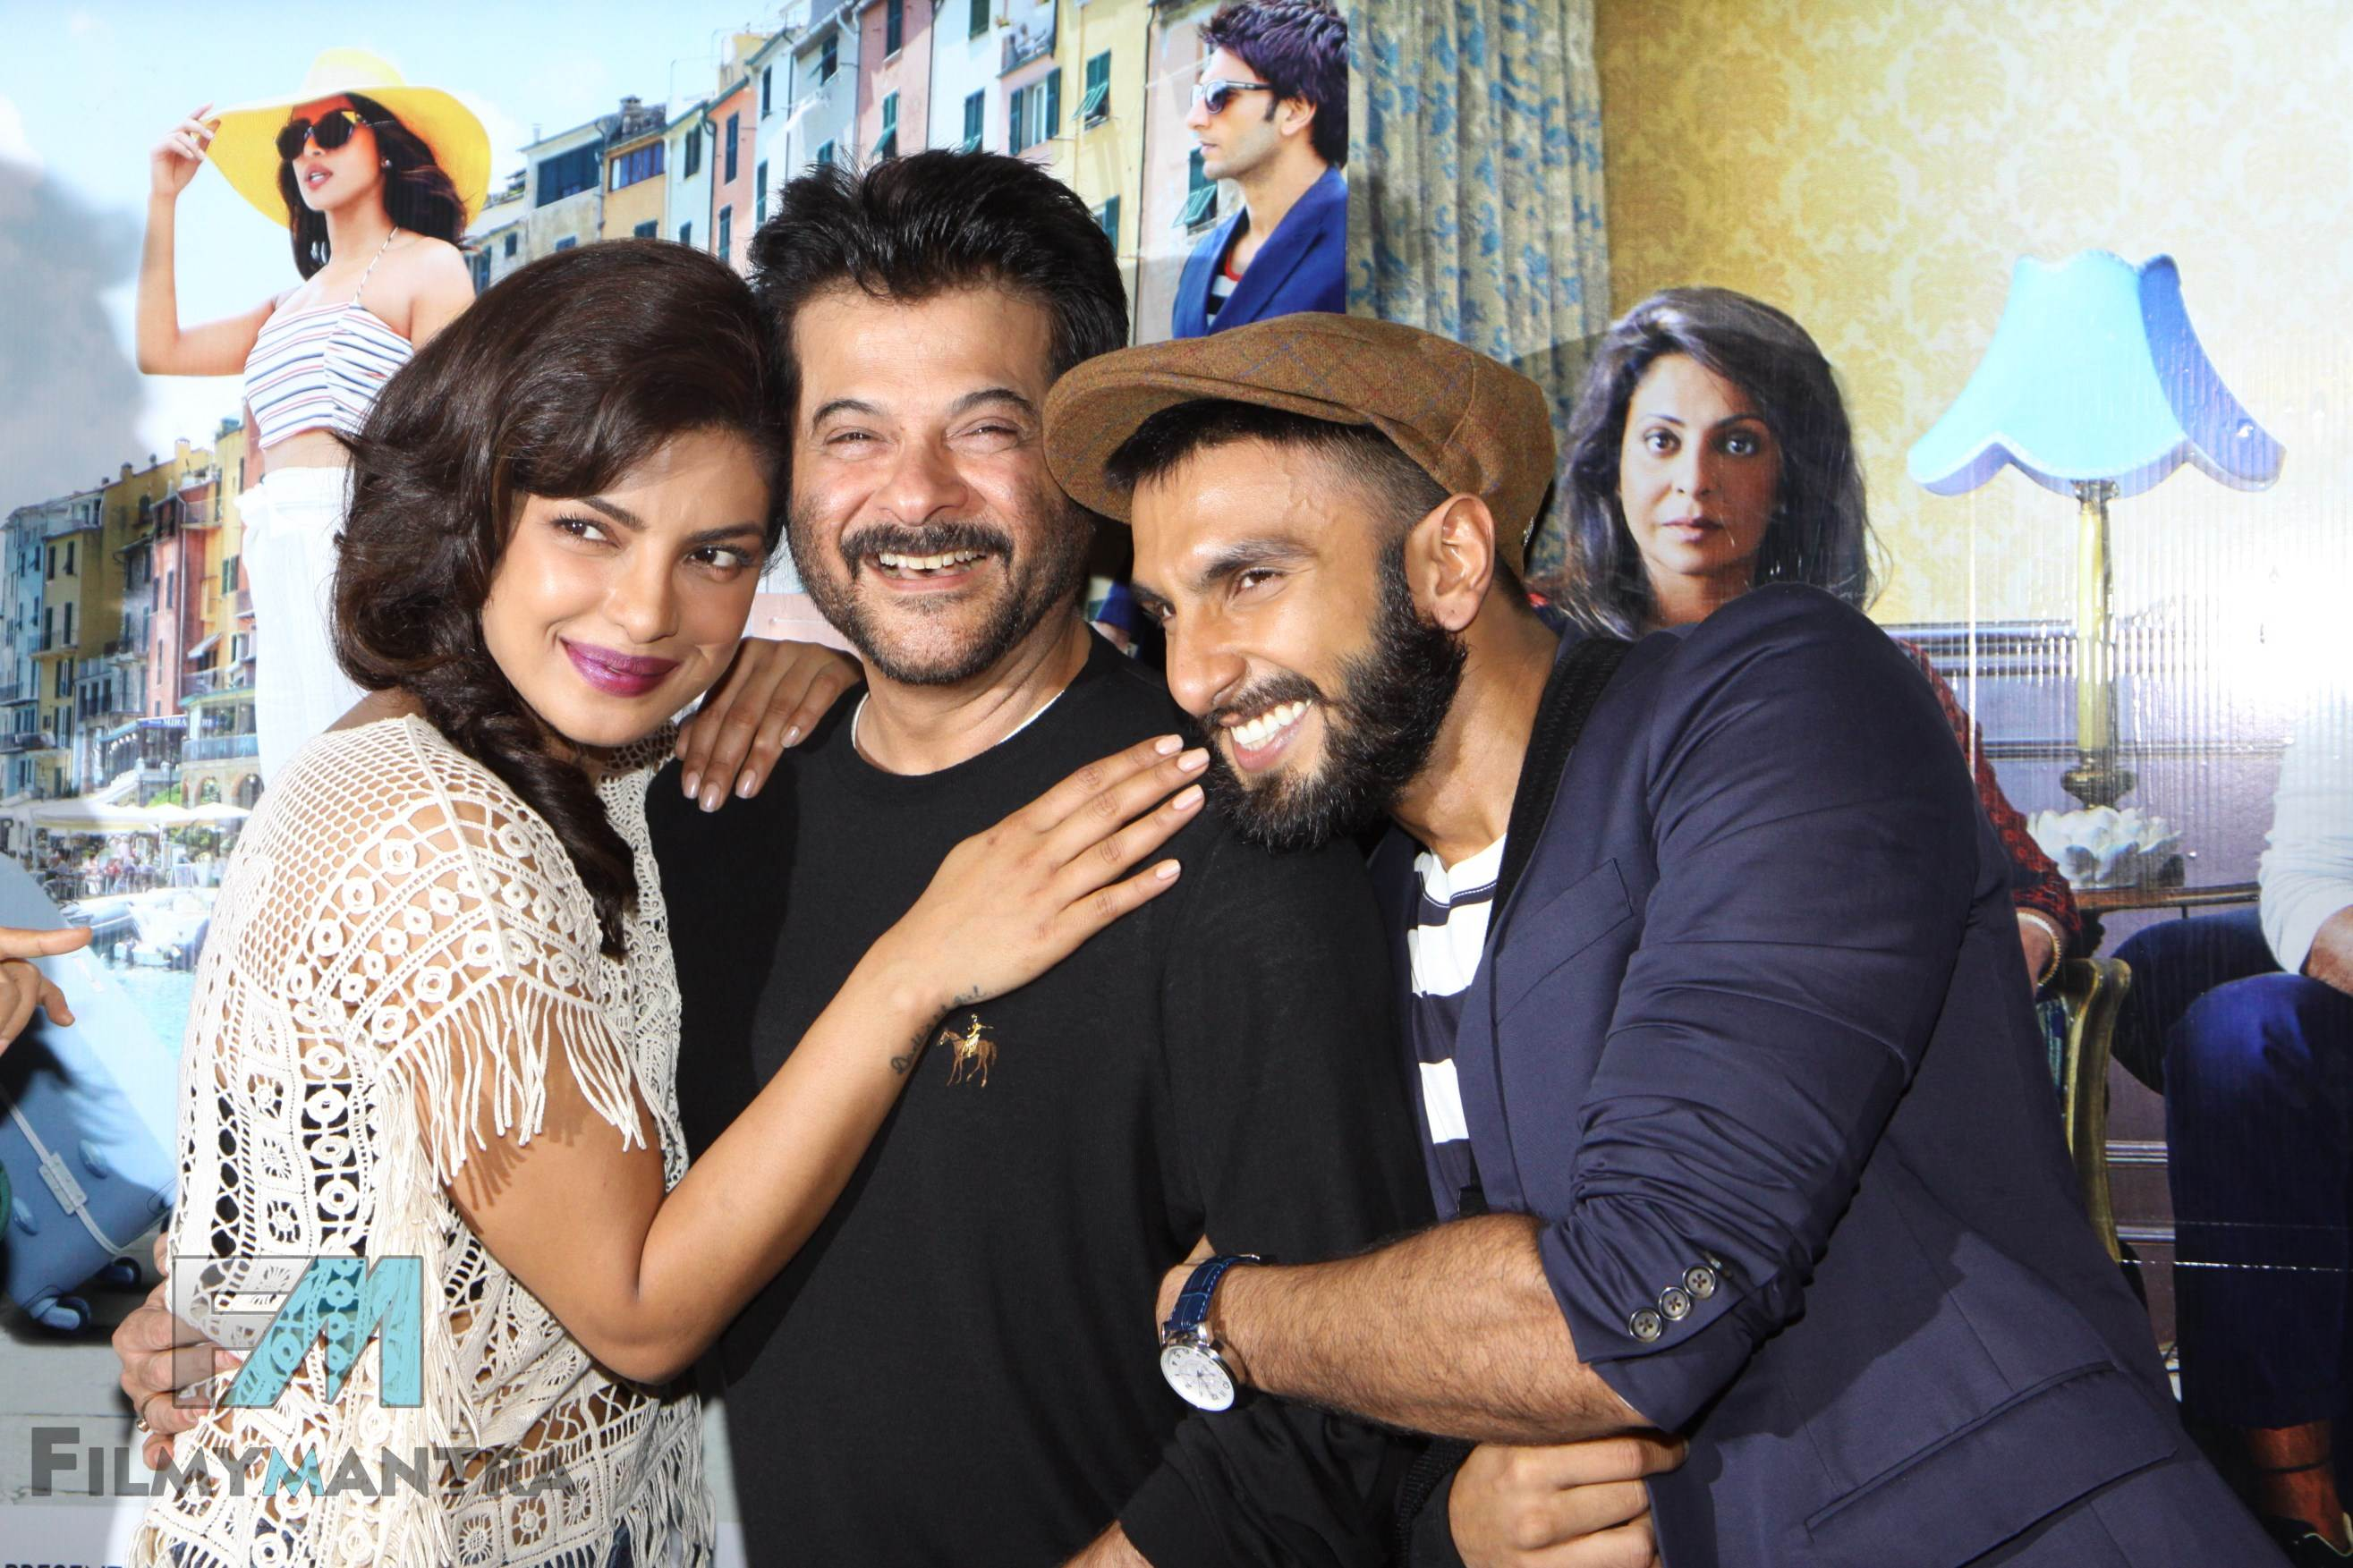 Ranveer singh, Priyanka Chopra and Anil kapoor at Dil Dhadakne Do trailer launch